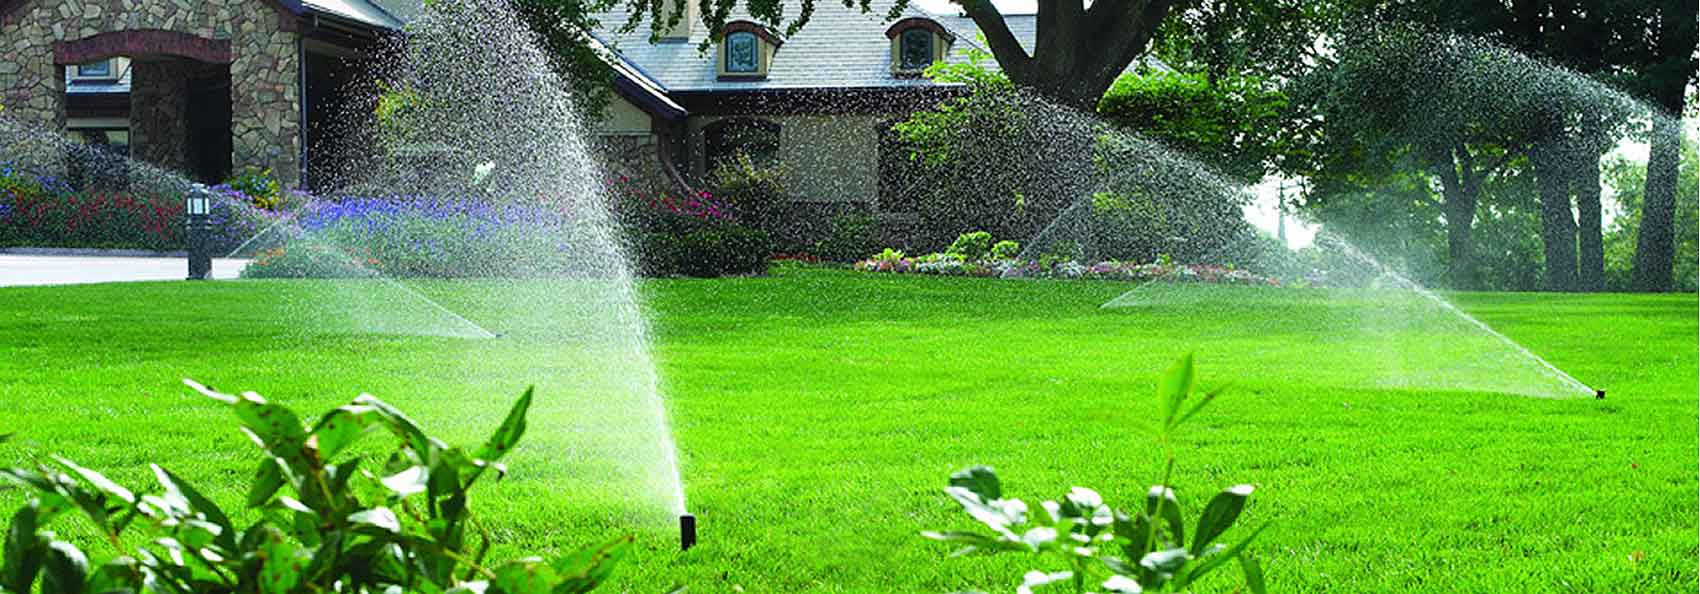 Econlawn Sprinkler Systems